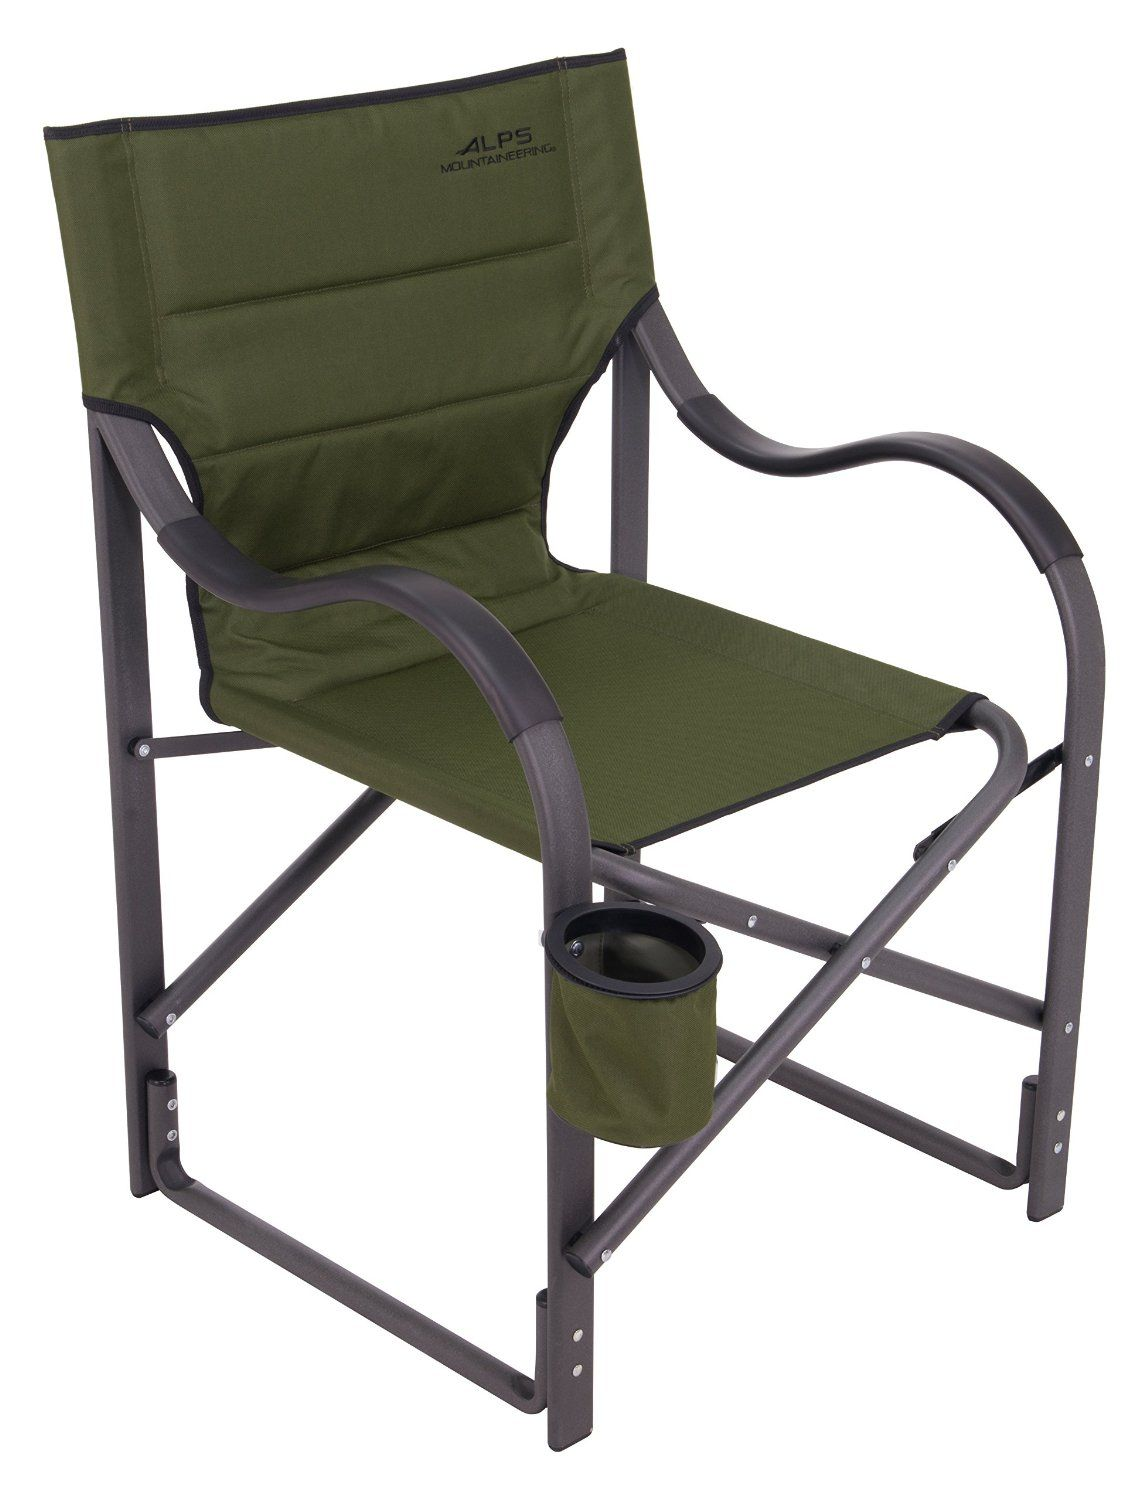 Robot Check Camping chairs, Outdoor chairs, Folding